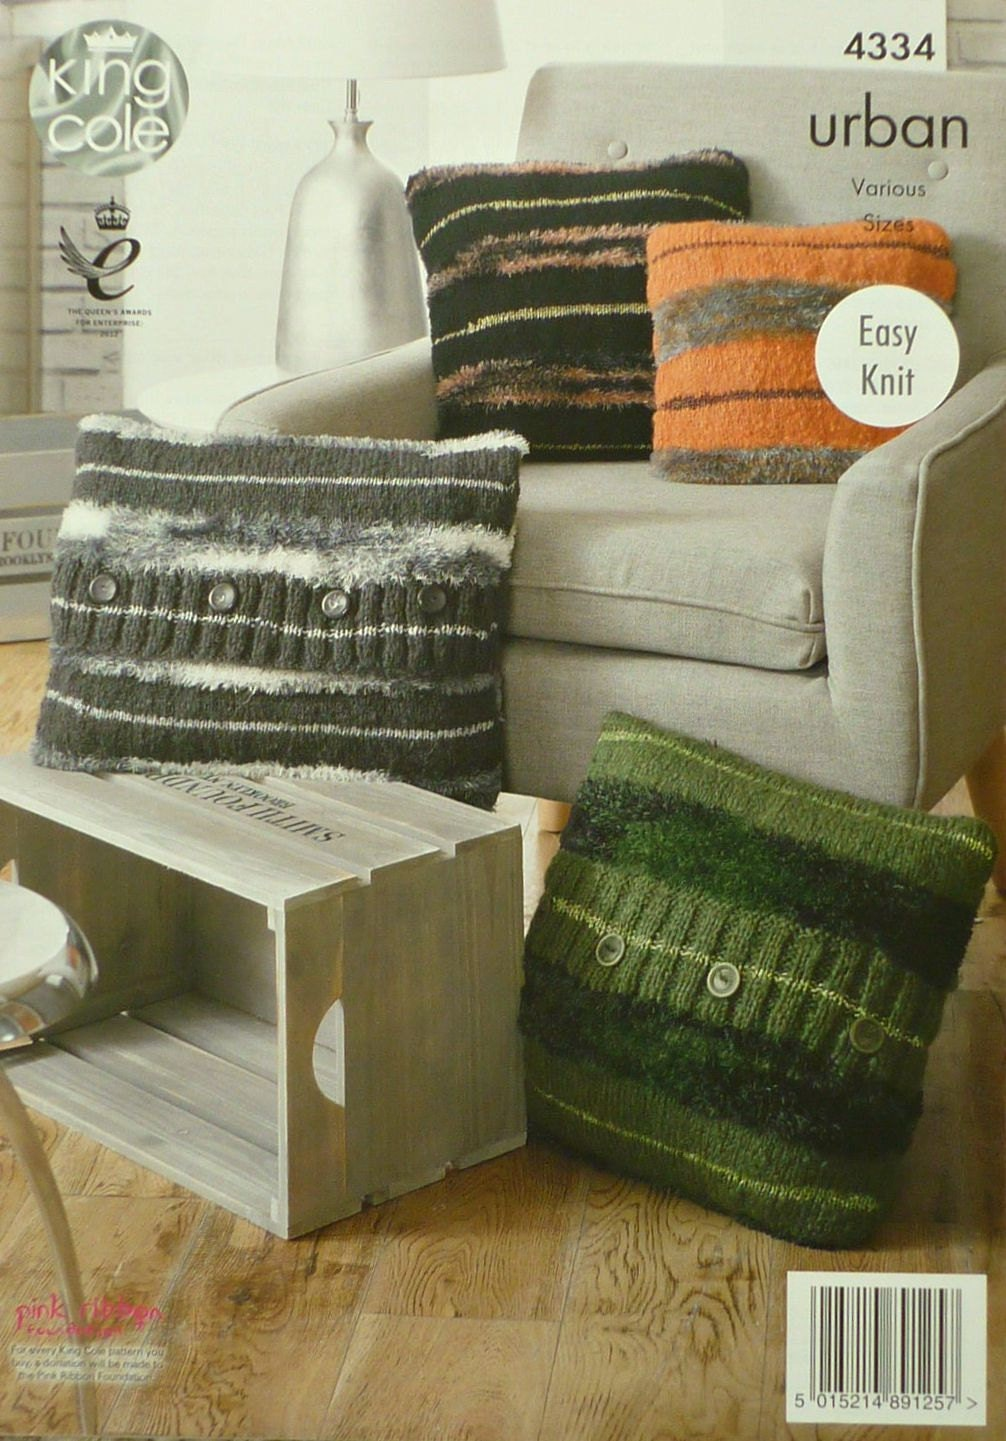 Oblong Cushion Knitting Pattern : Cushion Knitting Pattern K4334 Square, Oblong Buttoned and Zipped Cushions (P...